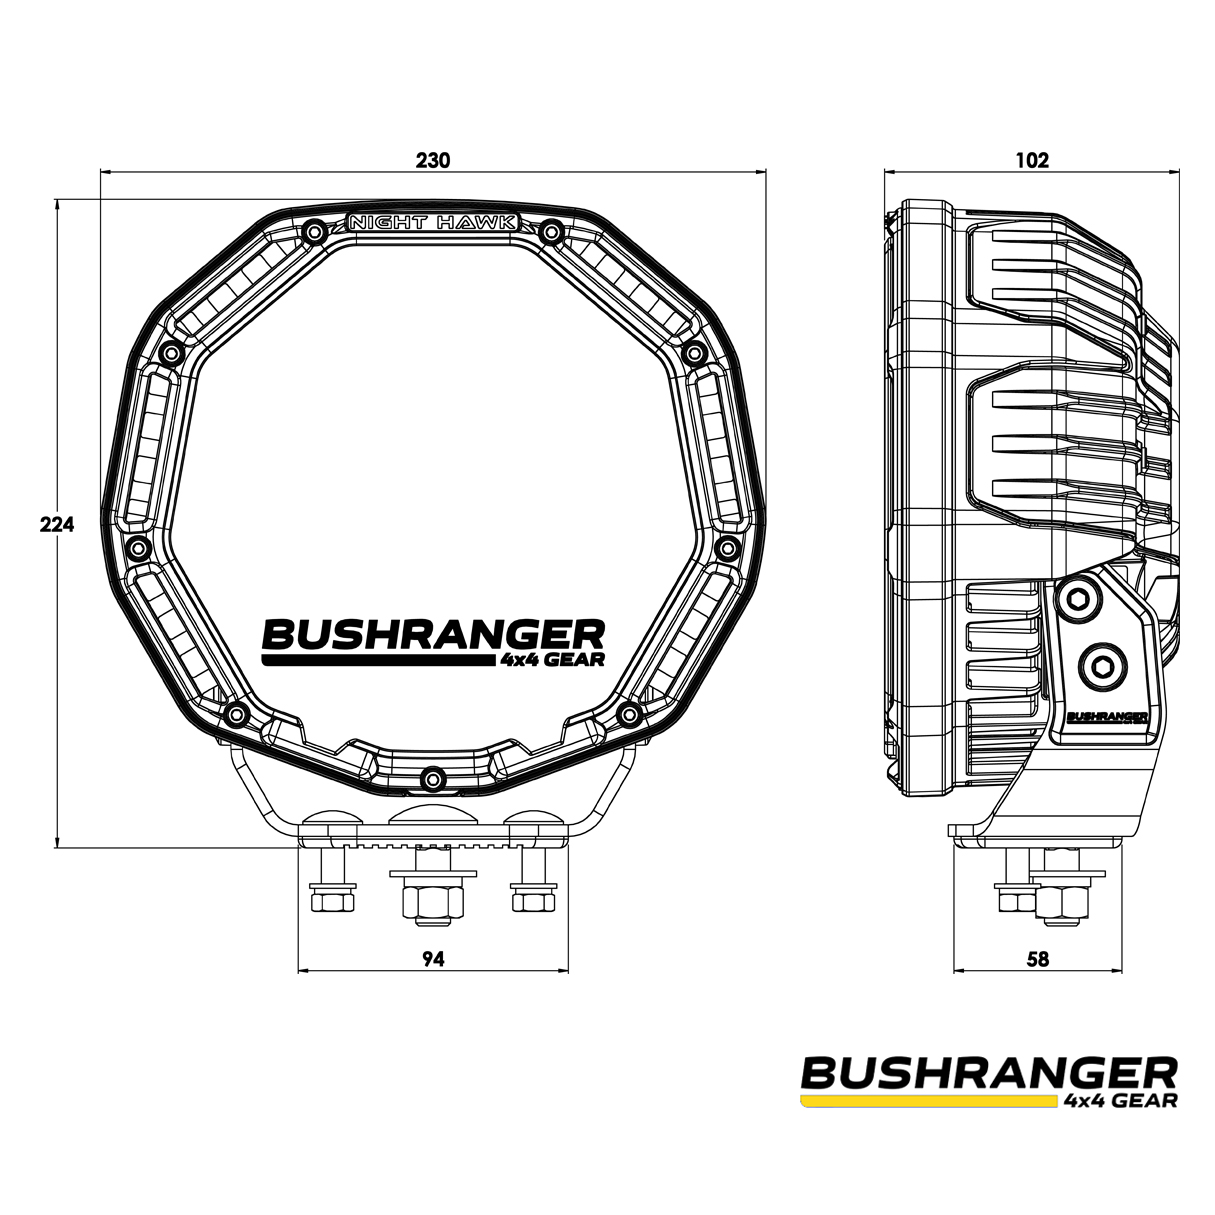 Bushranger Nighthawk Vli Series Led Driving Light